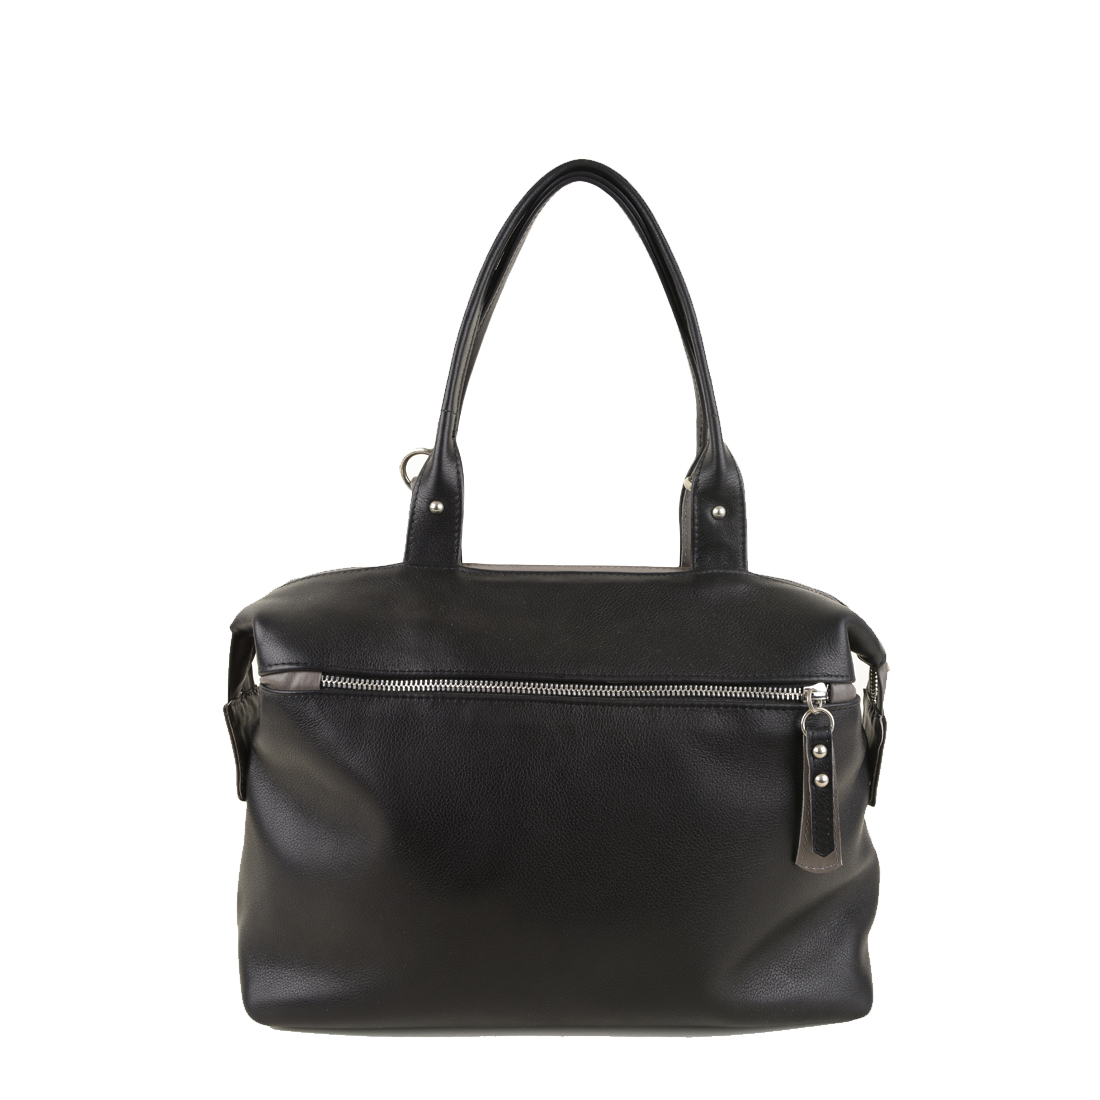 Grace Black Grigio Leather Tote Bag